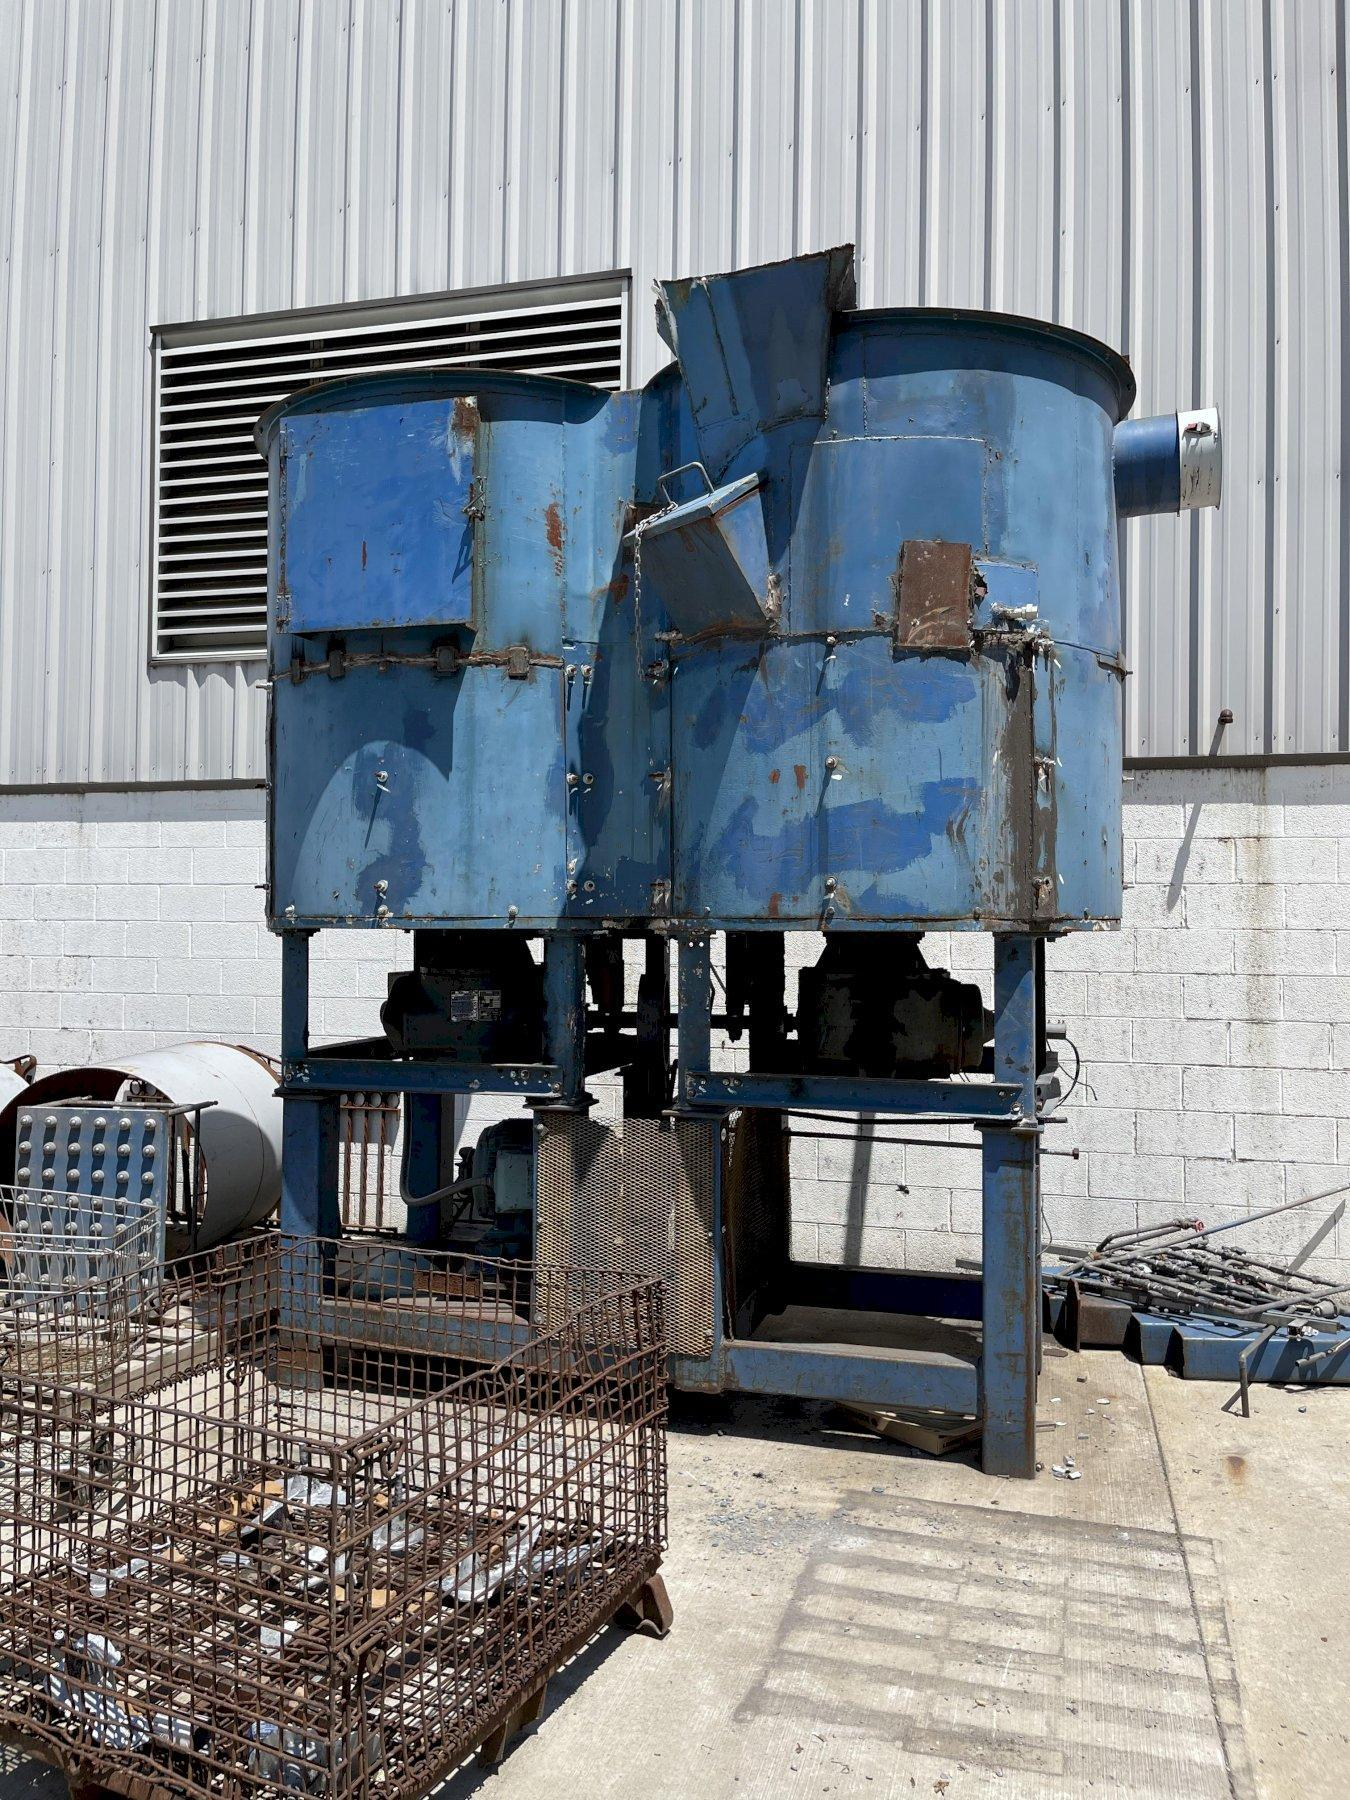 Simpson model 215 continuous sand muller with drive and gearboxes